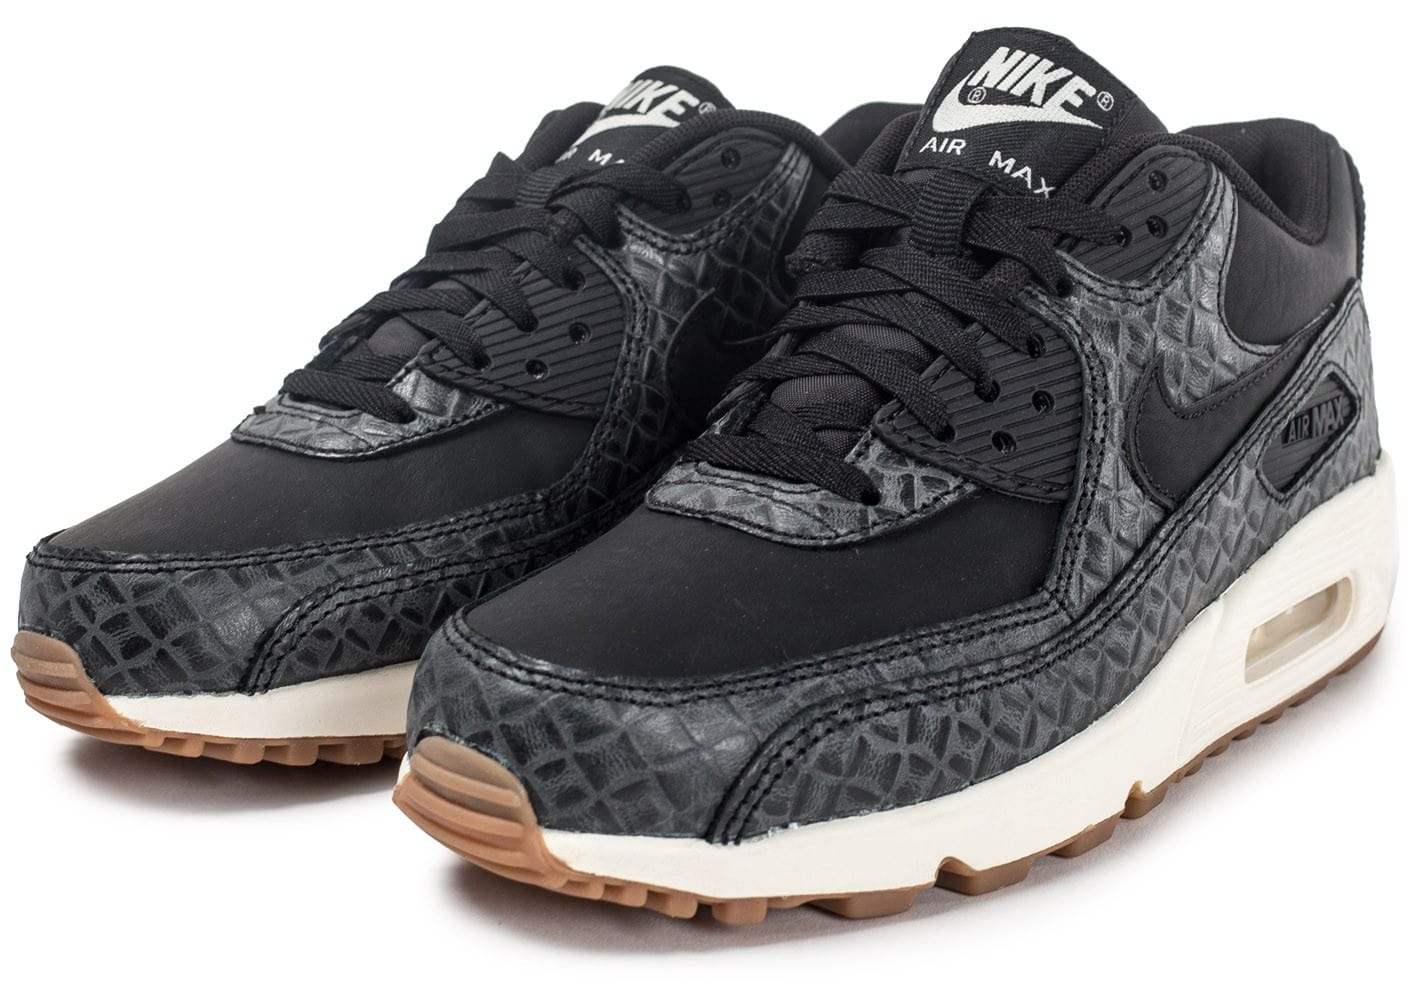 Nike Air Max 90 Em 2014 Rouge Noir Chaussures Homme Air Max 90 Leather Black